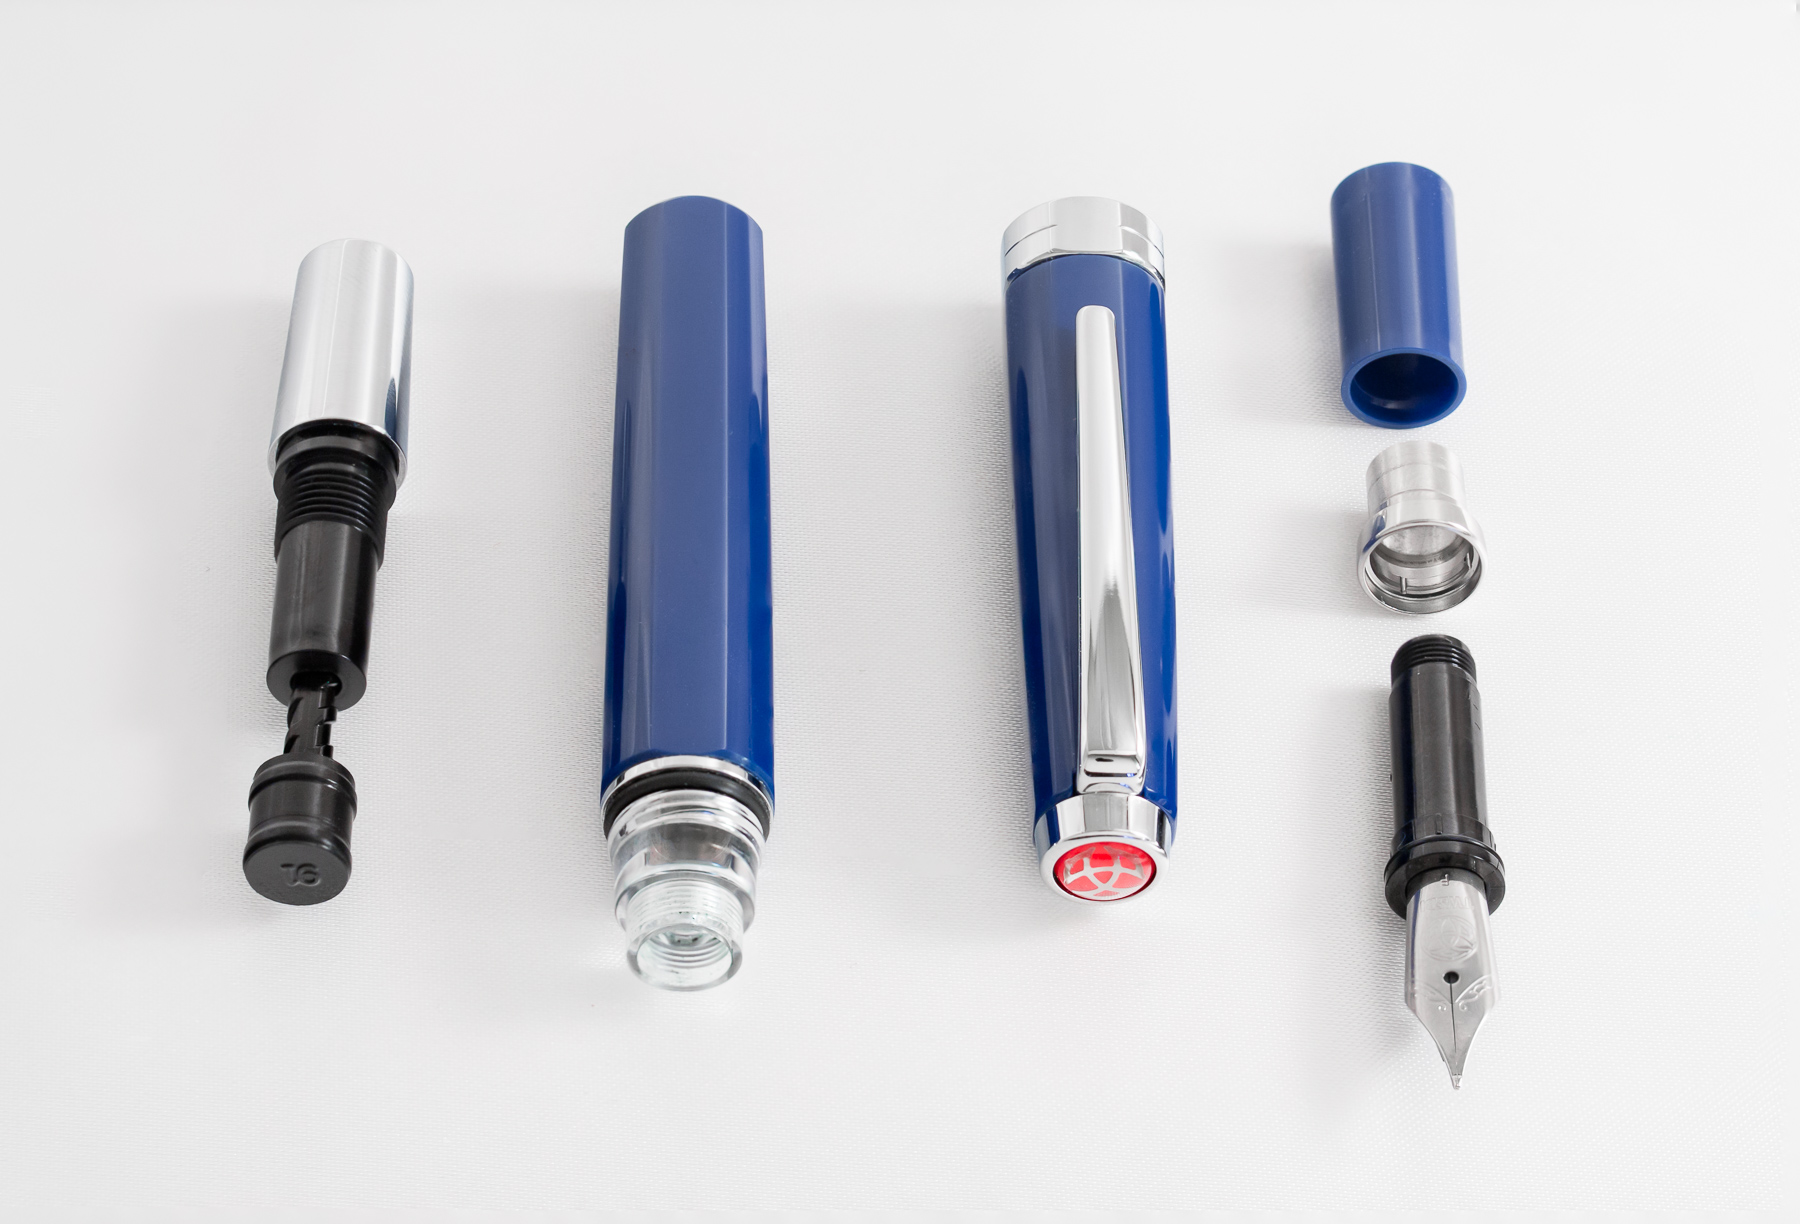 twsbi_classic_fountain_pen_review-disassembled